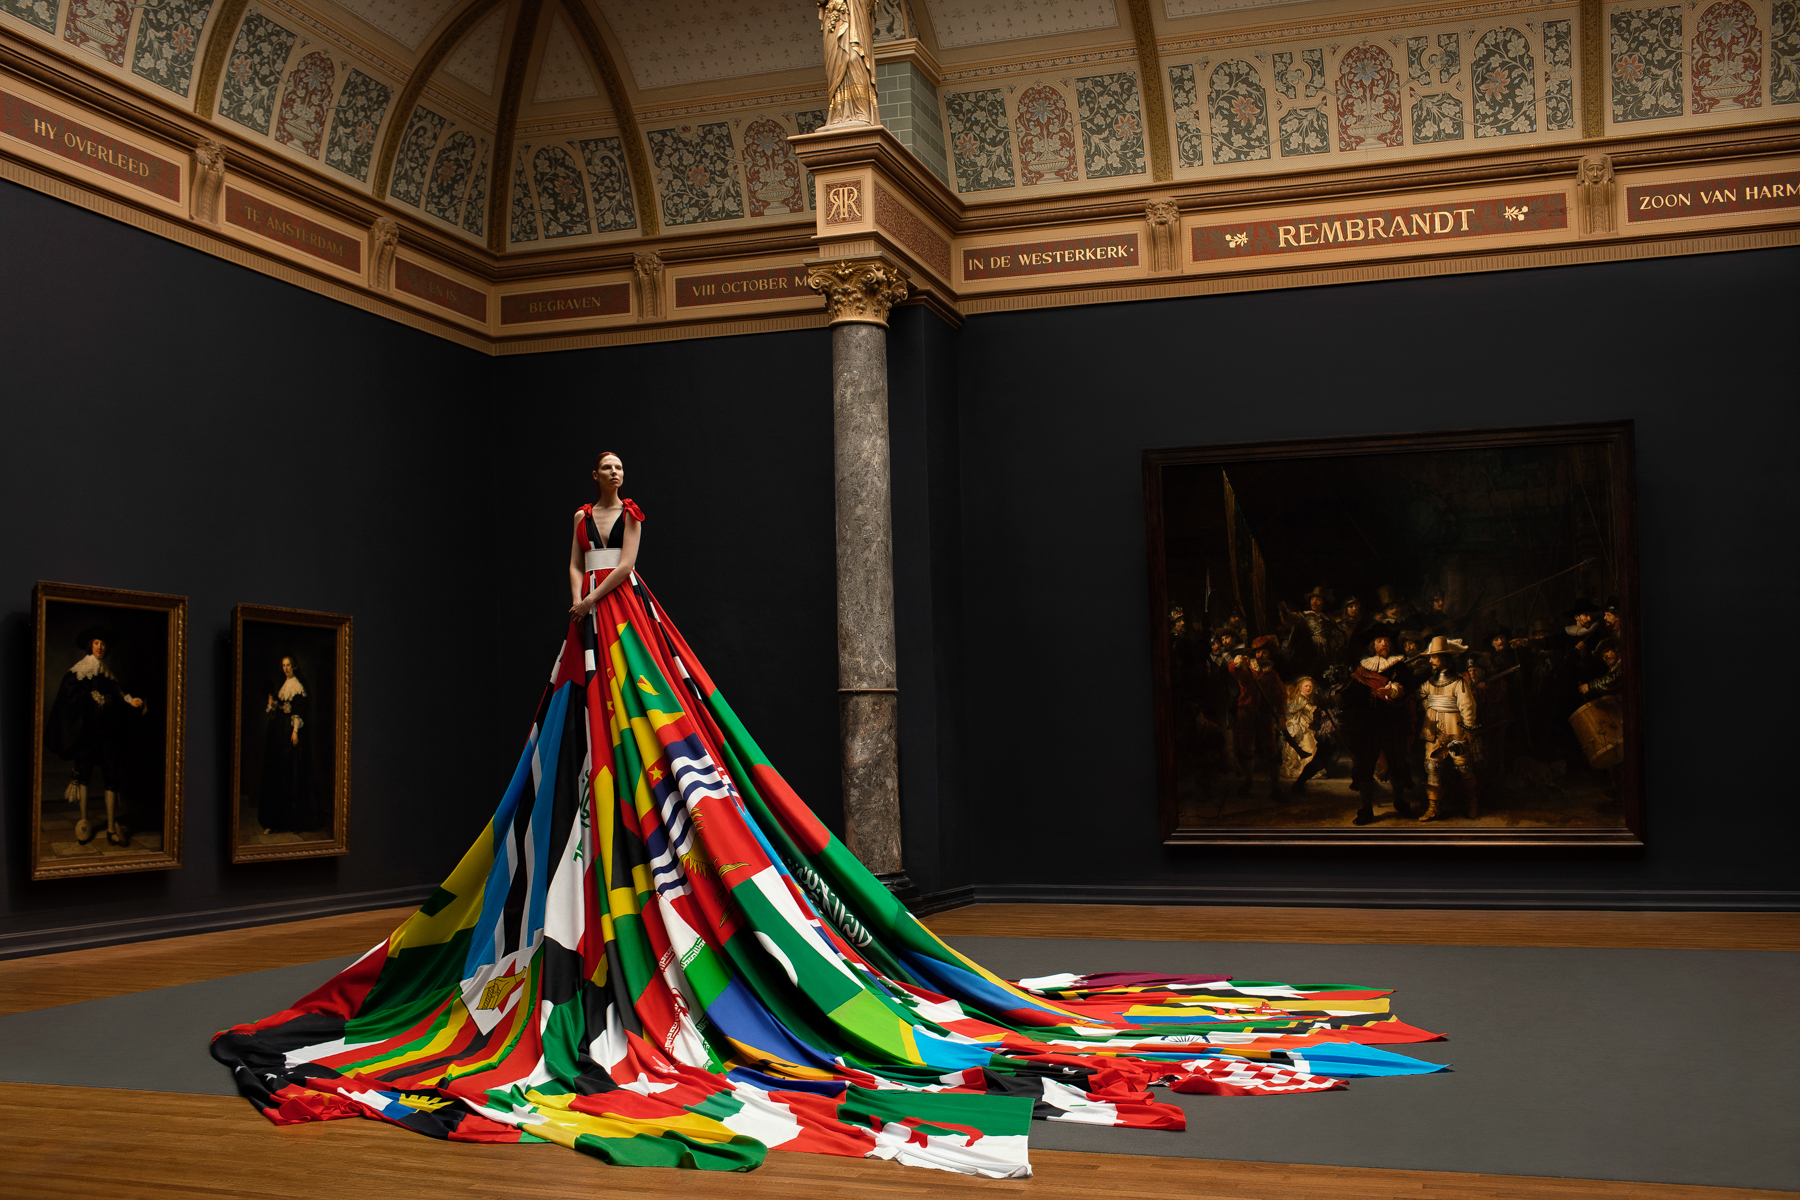 Valentijn de Hingh presents the Amsterdam Rainbow Dress in the Gallery of Honour at the Rijksmuseum Amsterdam, in front of Rembrandt's iconic Night Watch. Image by Pieter Henket Studio.